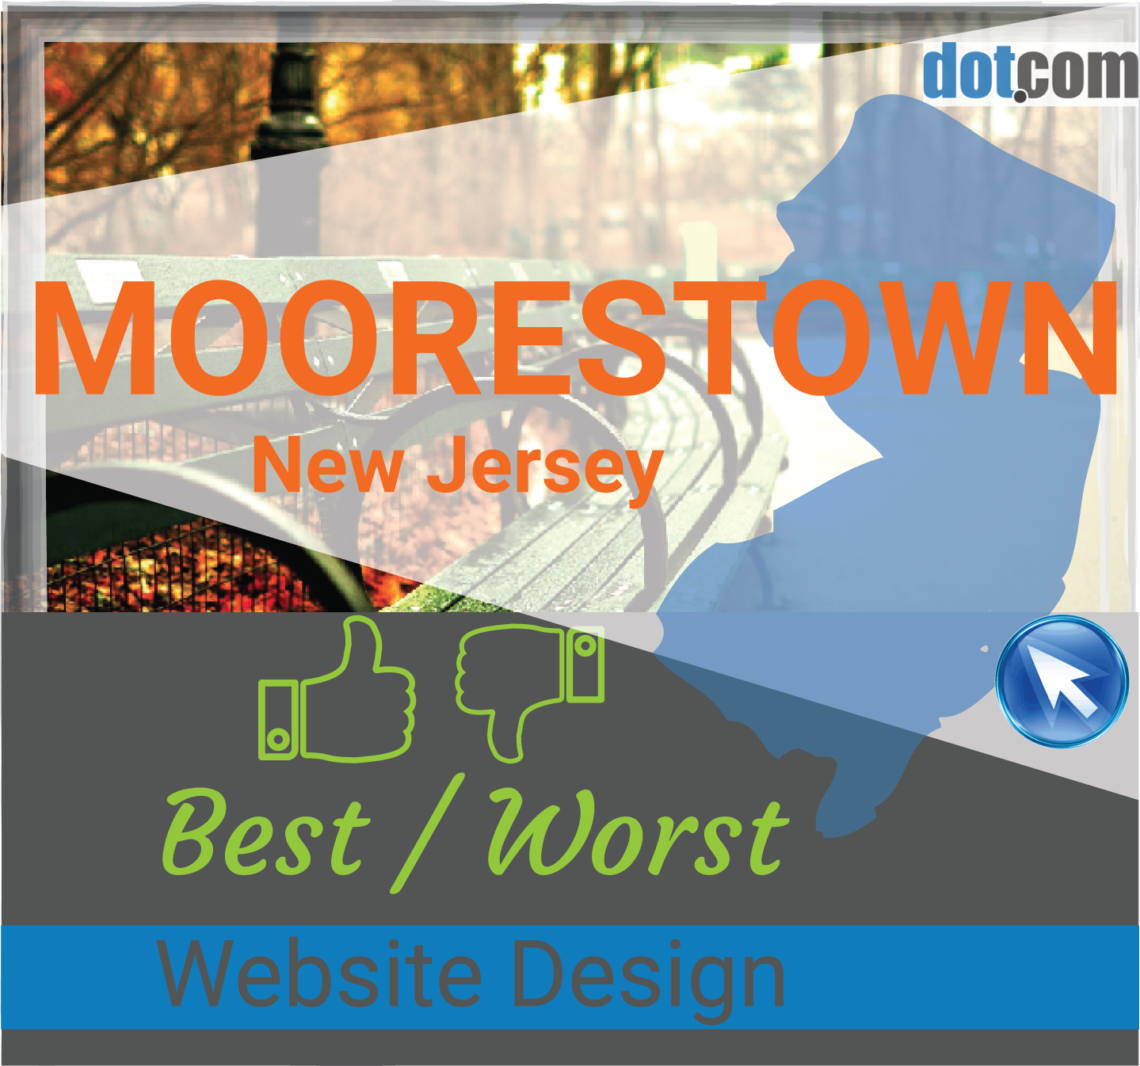 Moorestown NJ Website Design graphic